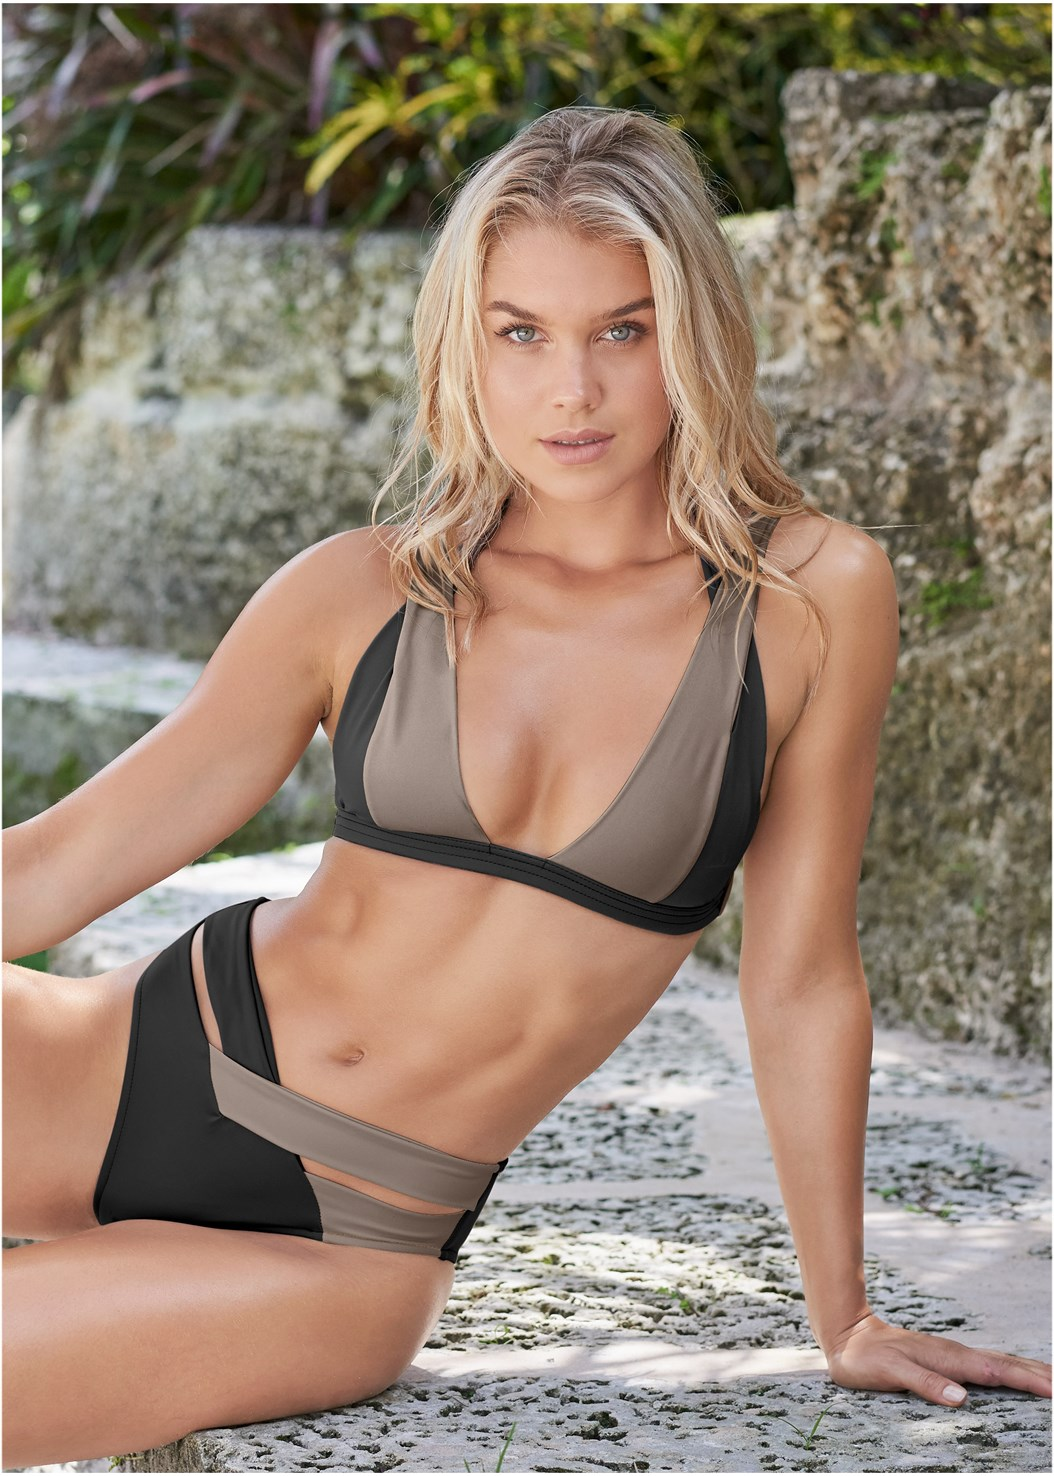 Sports Illustrated Swim™ Brazilian Bralette,Sports Illustrated Swim™ Brazilian Crisscross Bottom,Sports Illustrated Swim™ Strappy Banded Bottom,Sports Illustrated Swim™ Low Rise Brief,Sports Illustrated Swim™ Cheeky Short